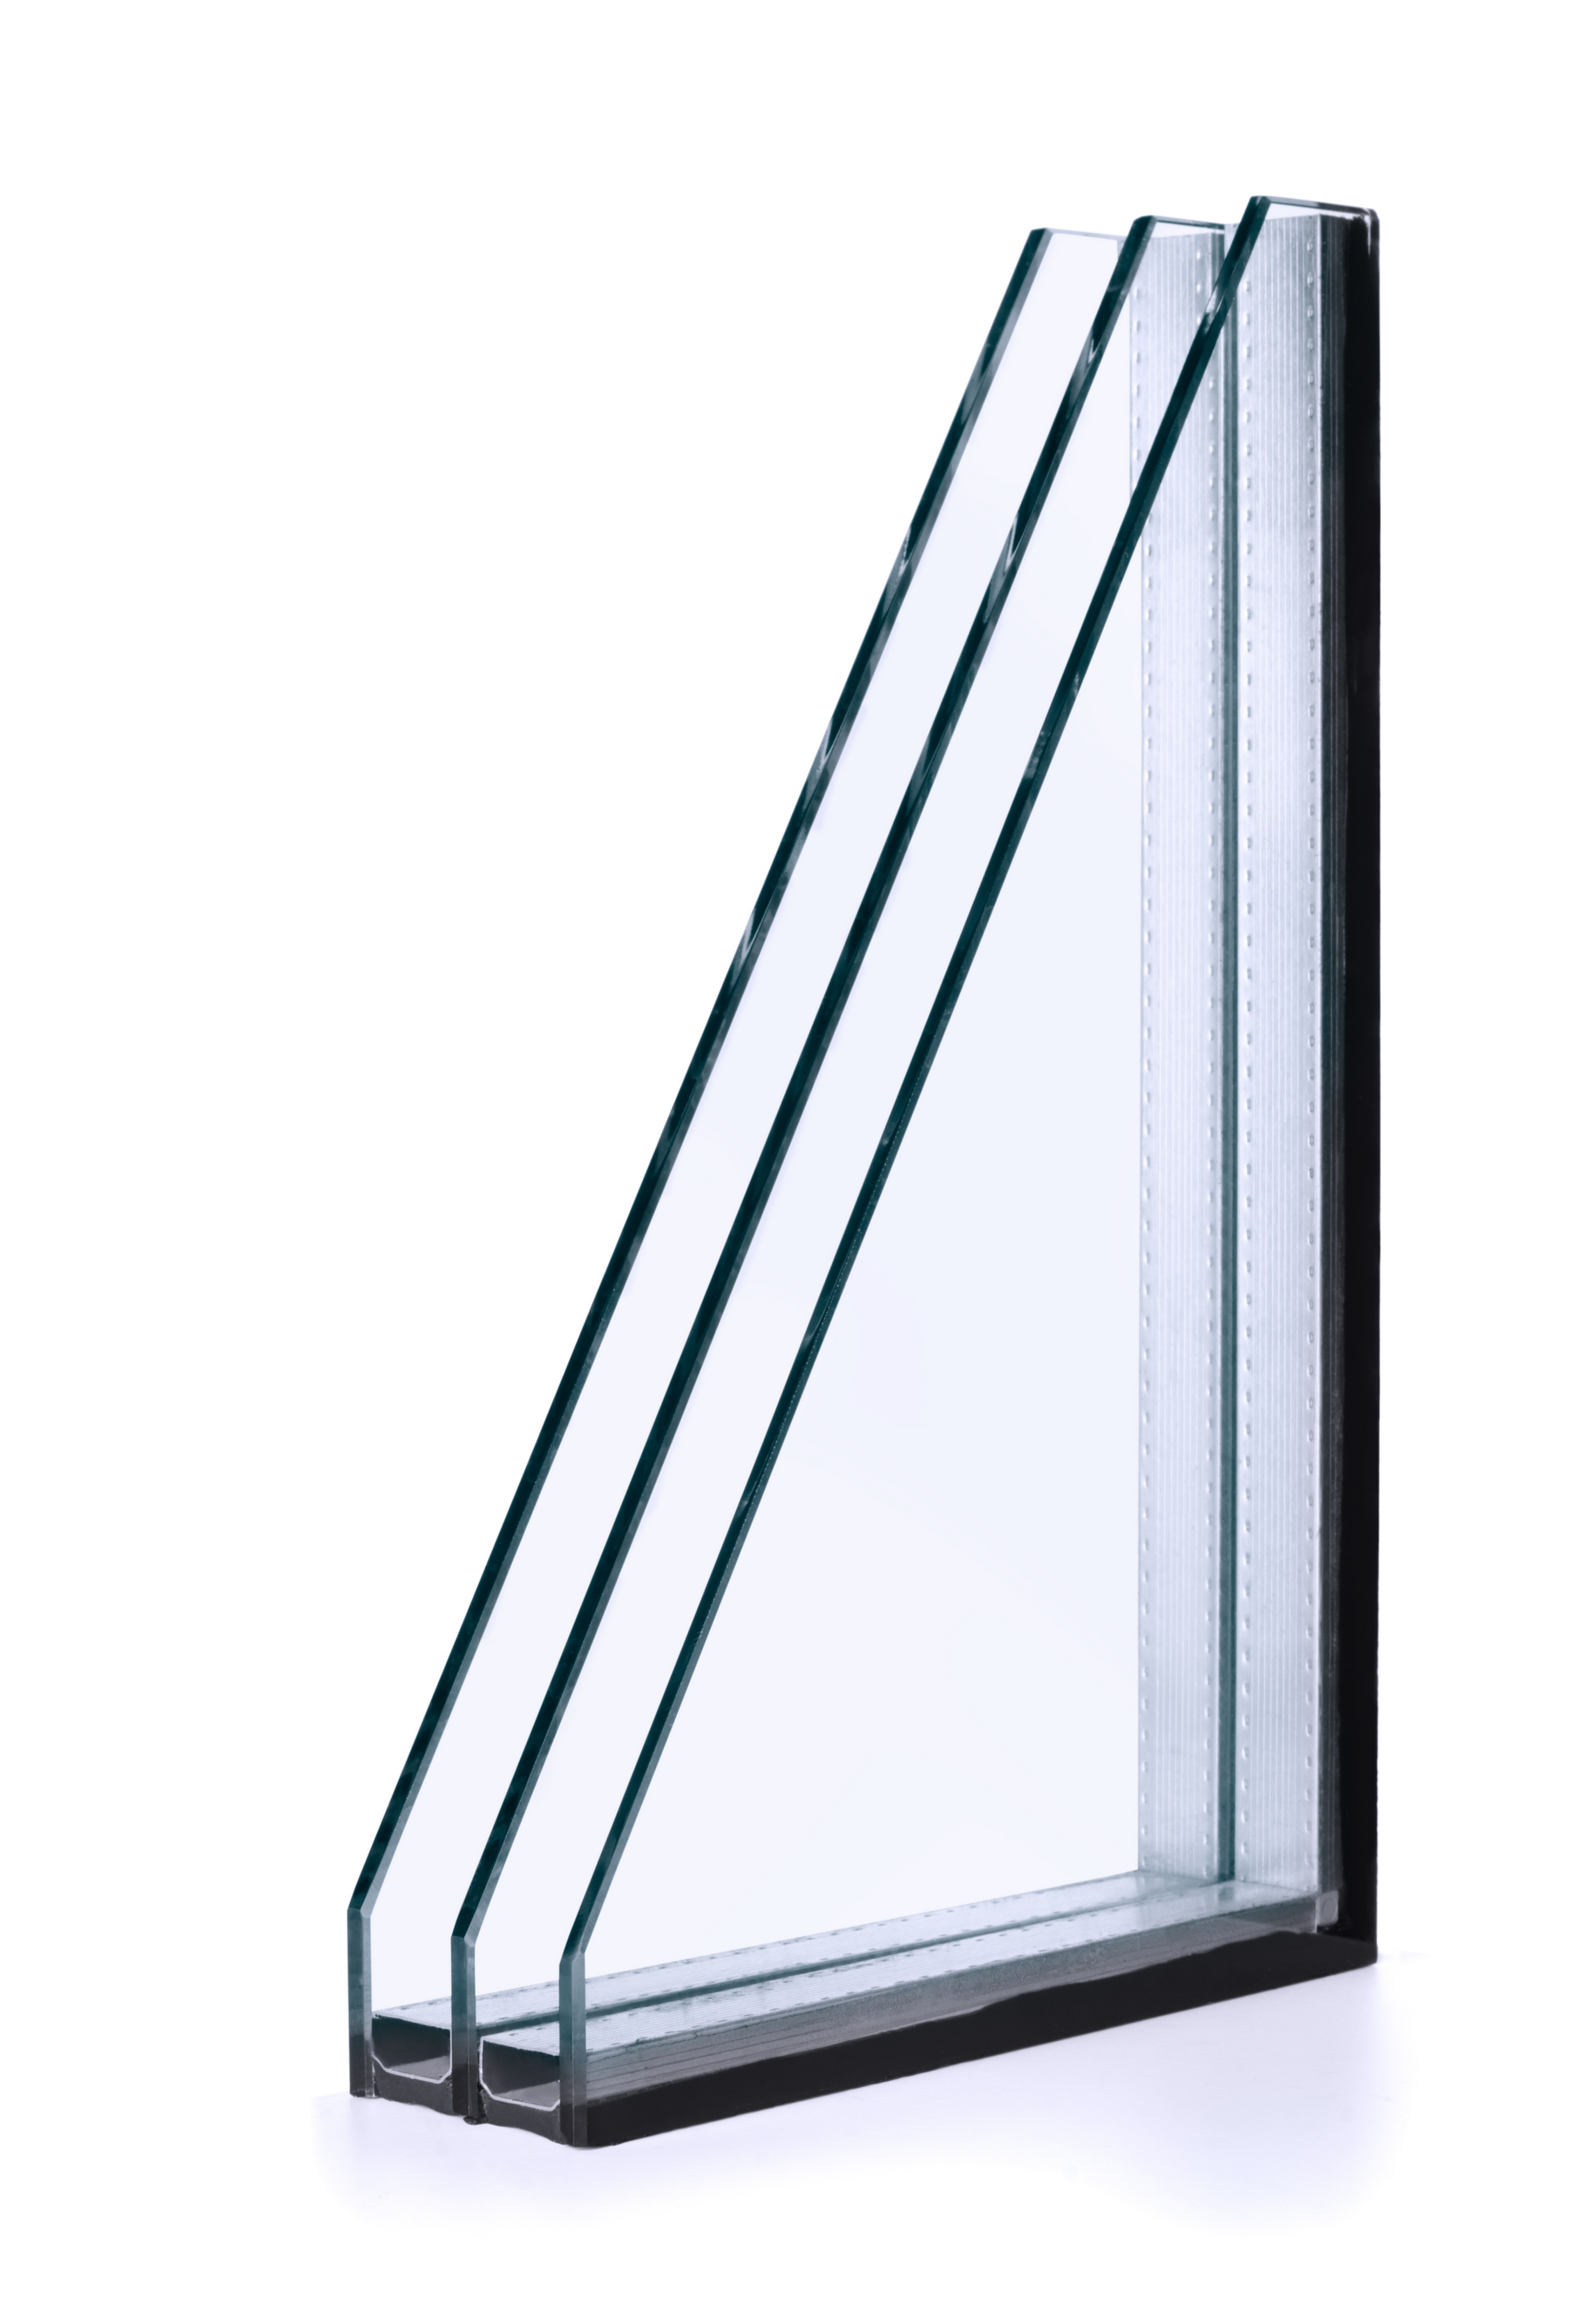 Heat retaining double glazing sligo glass for Double glazed window glass